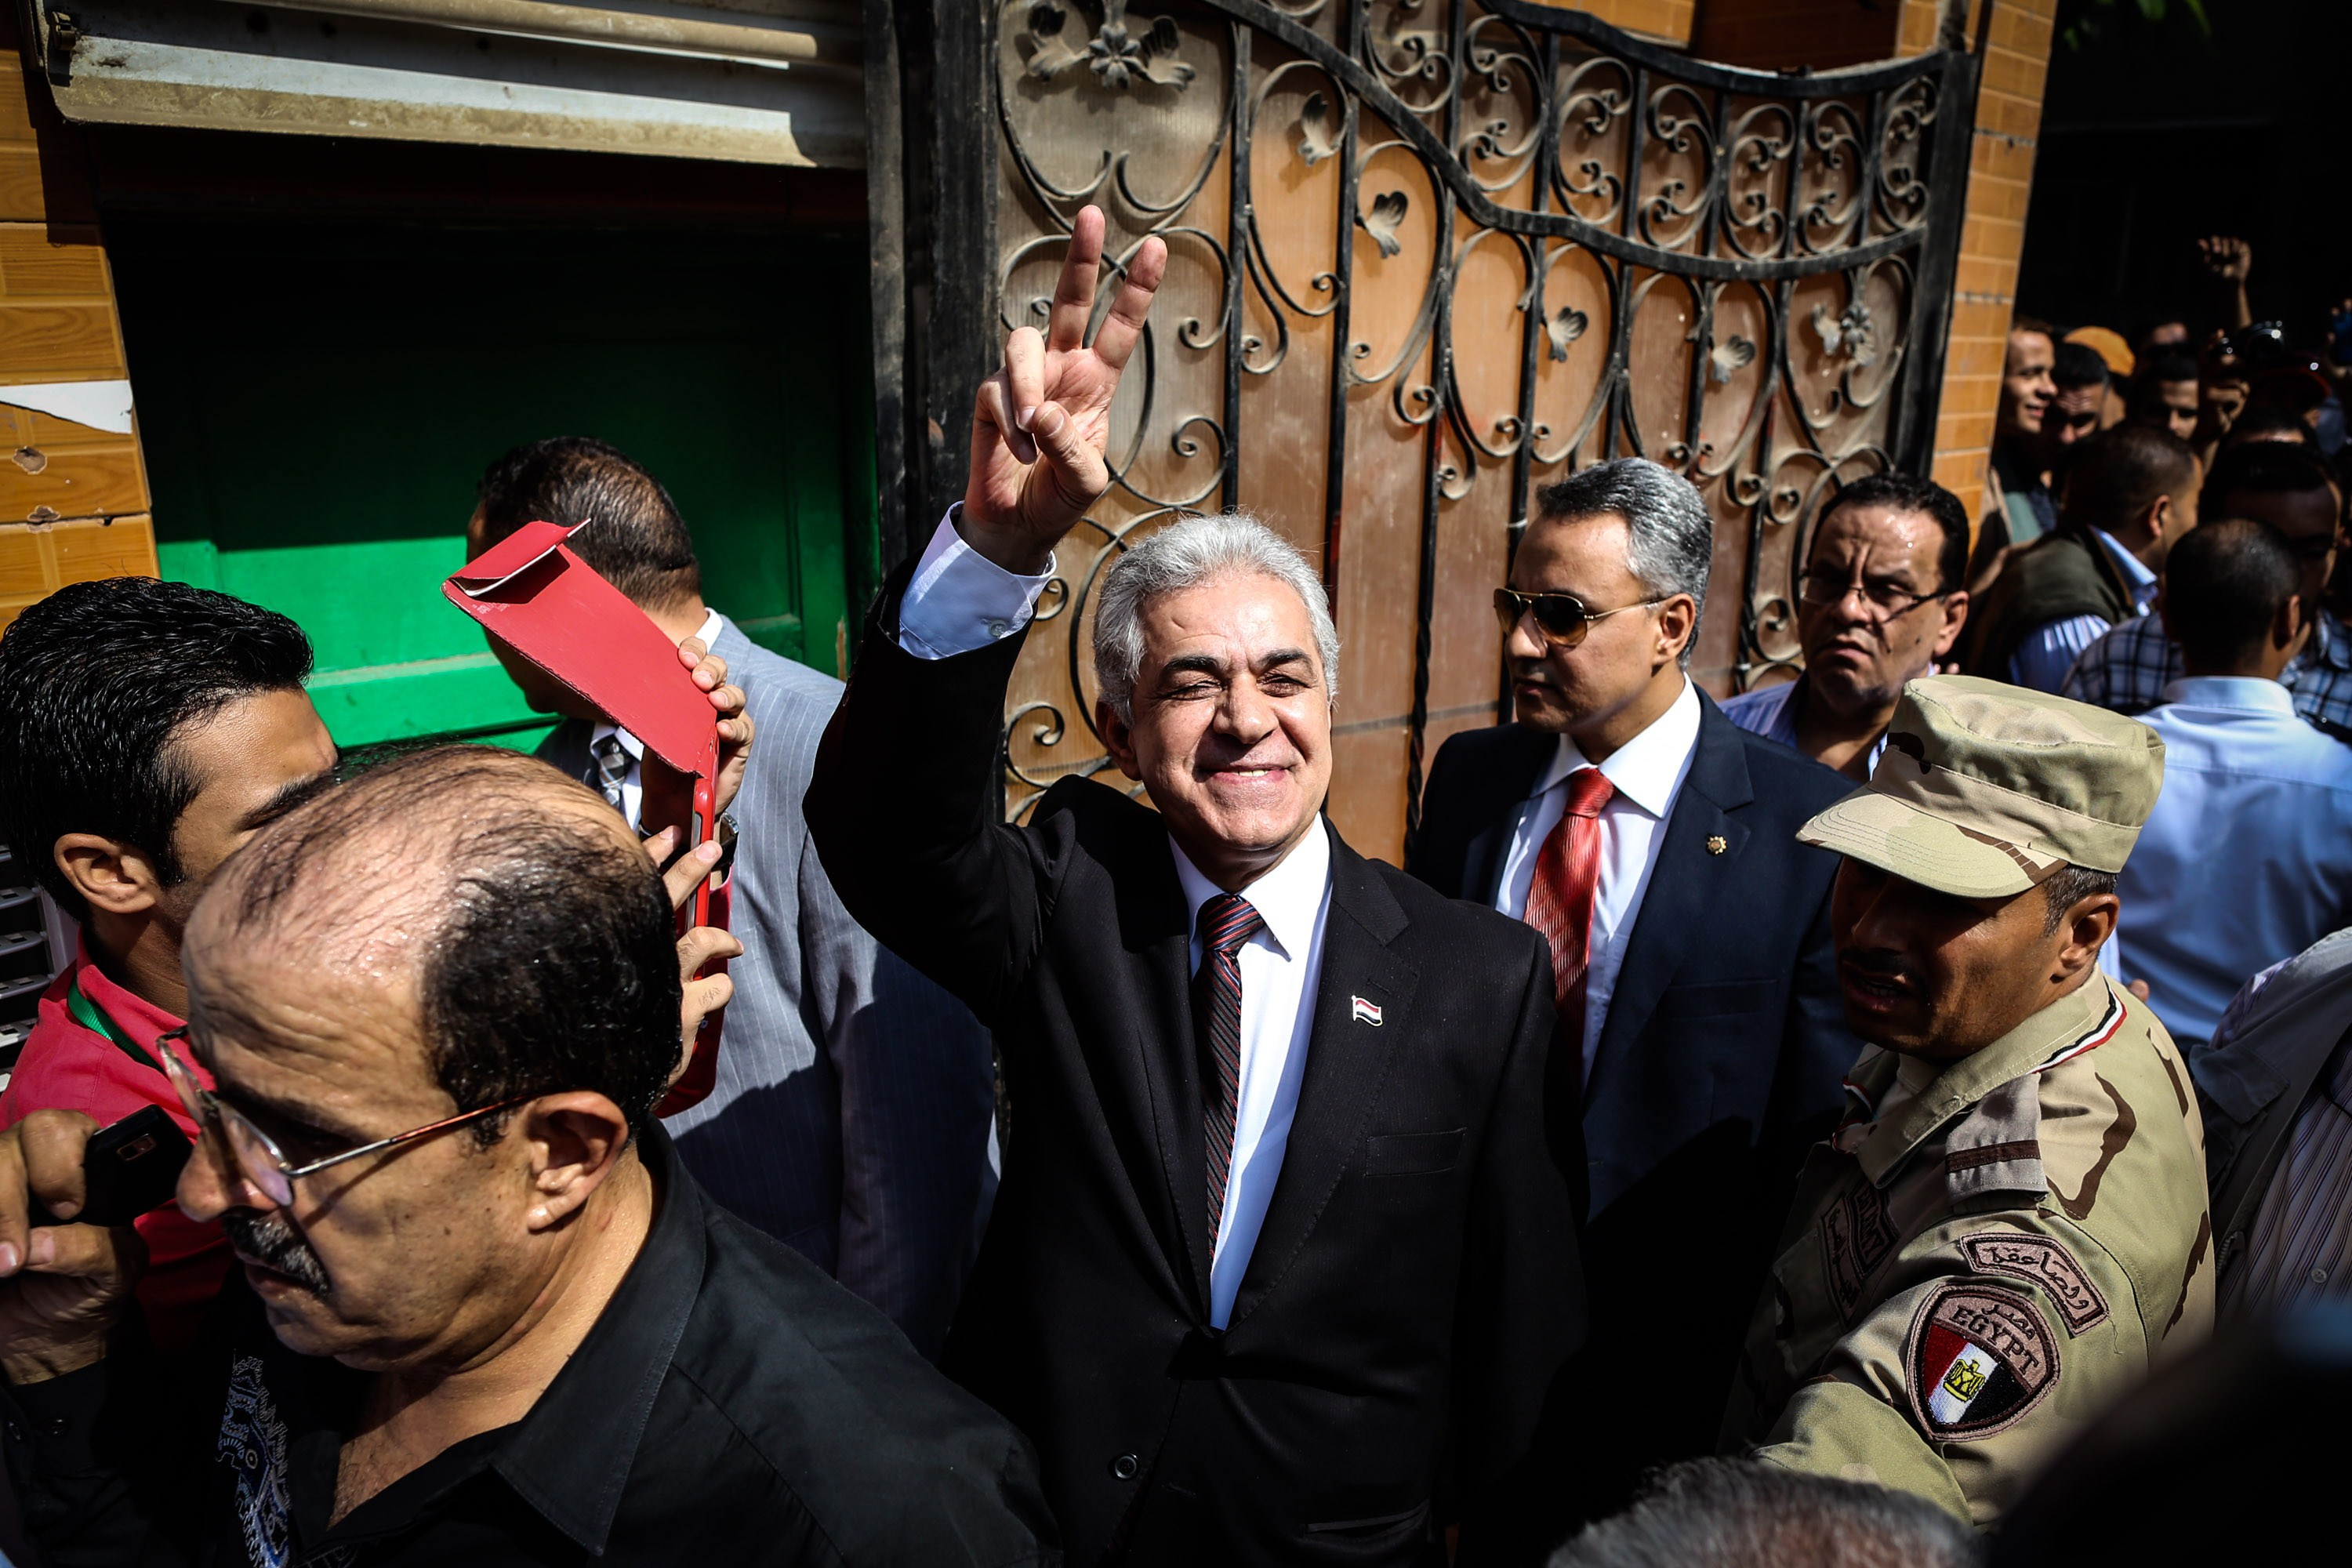 Egyptian presidential candidate Hamdeen Sabahi (C) gestures to his supporters after casting his vote at a polling station in the capital Cairo on May 26, 2014. Egyptians voted for a new president, with the ex-army chief who overthrew the country's first democratically elected leader and crushed his Islamist movement expected to win in a landslide.  (AFP PHOTO/MOHAMED EL-SHAHED)